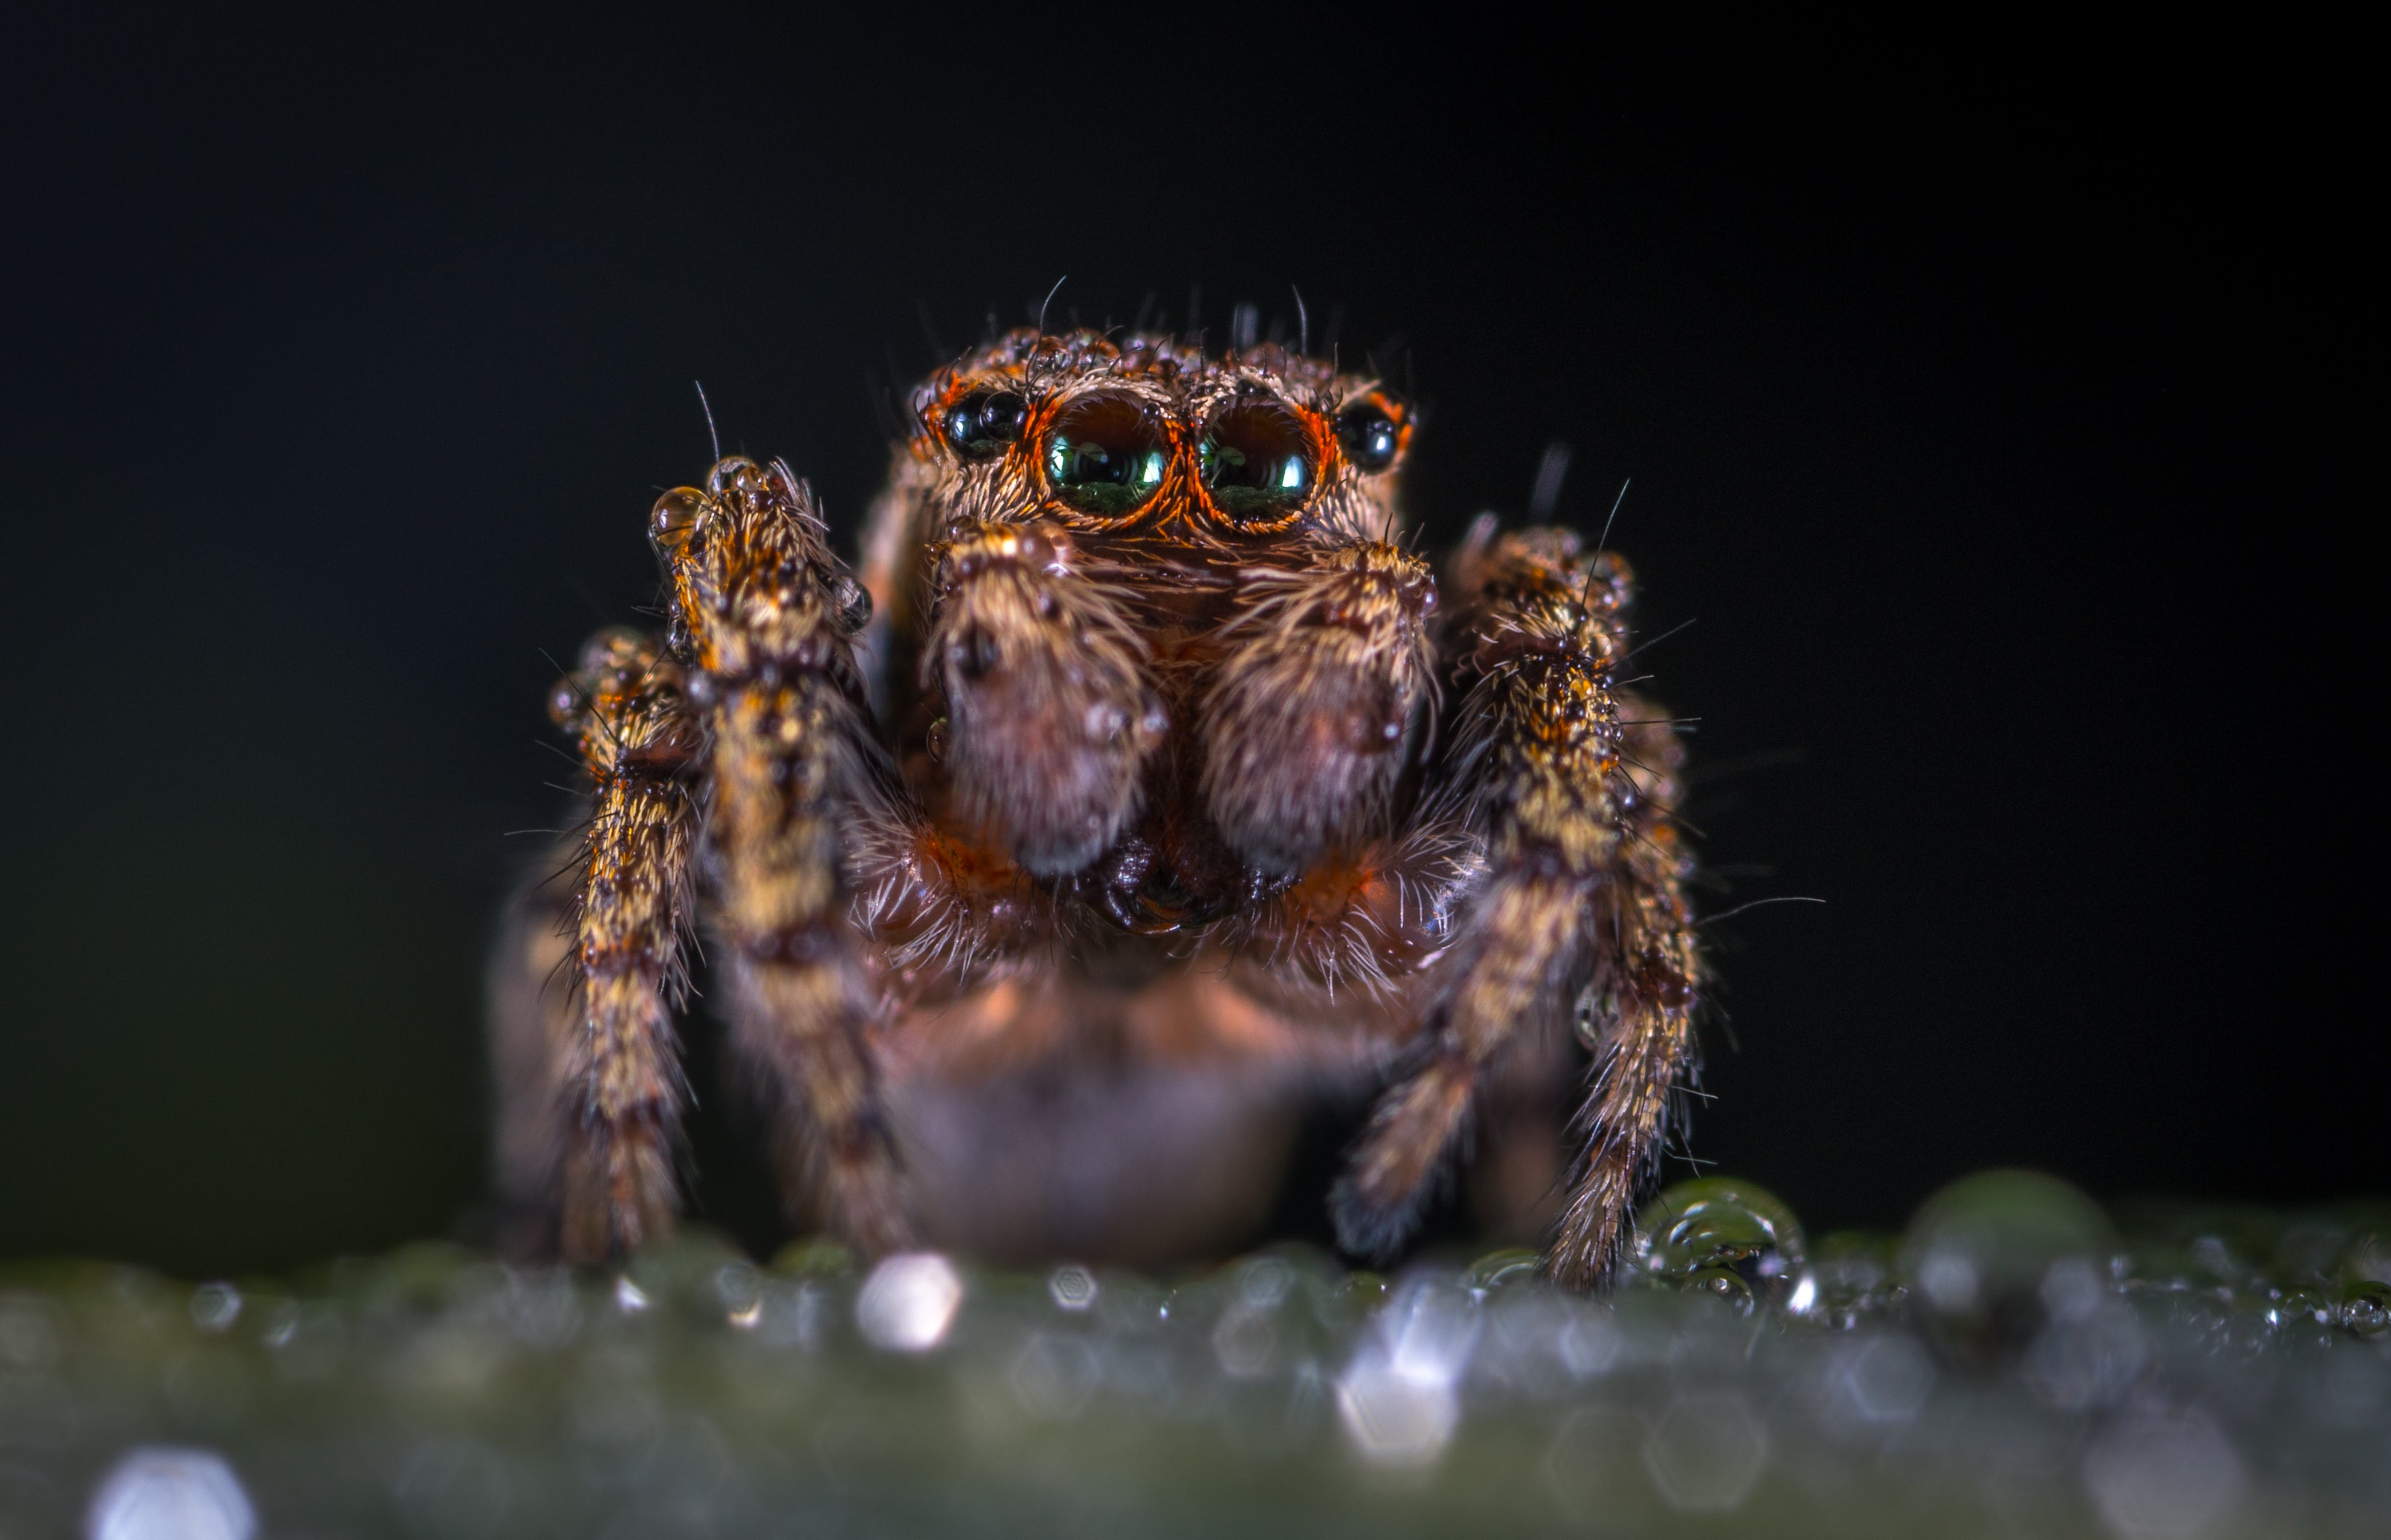 Macro Photography of Brown Jumping Spider